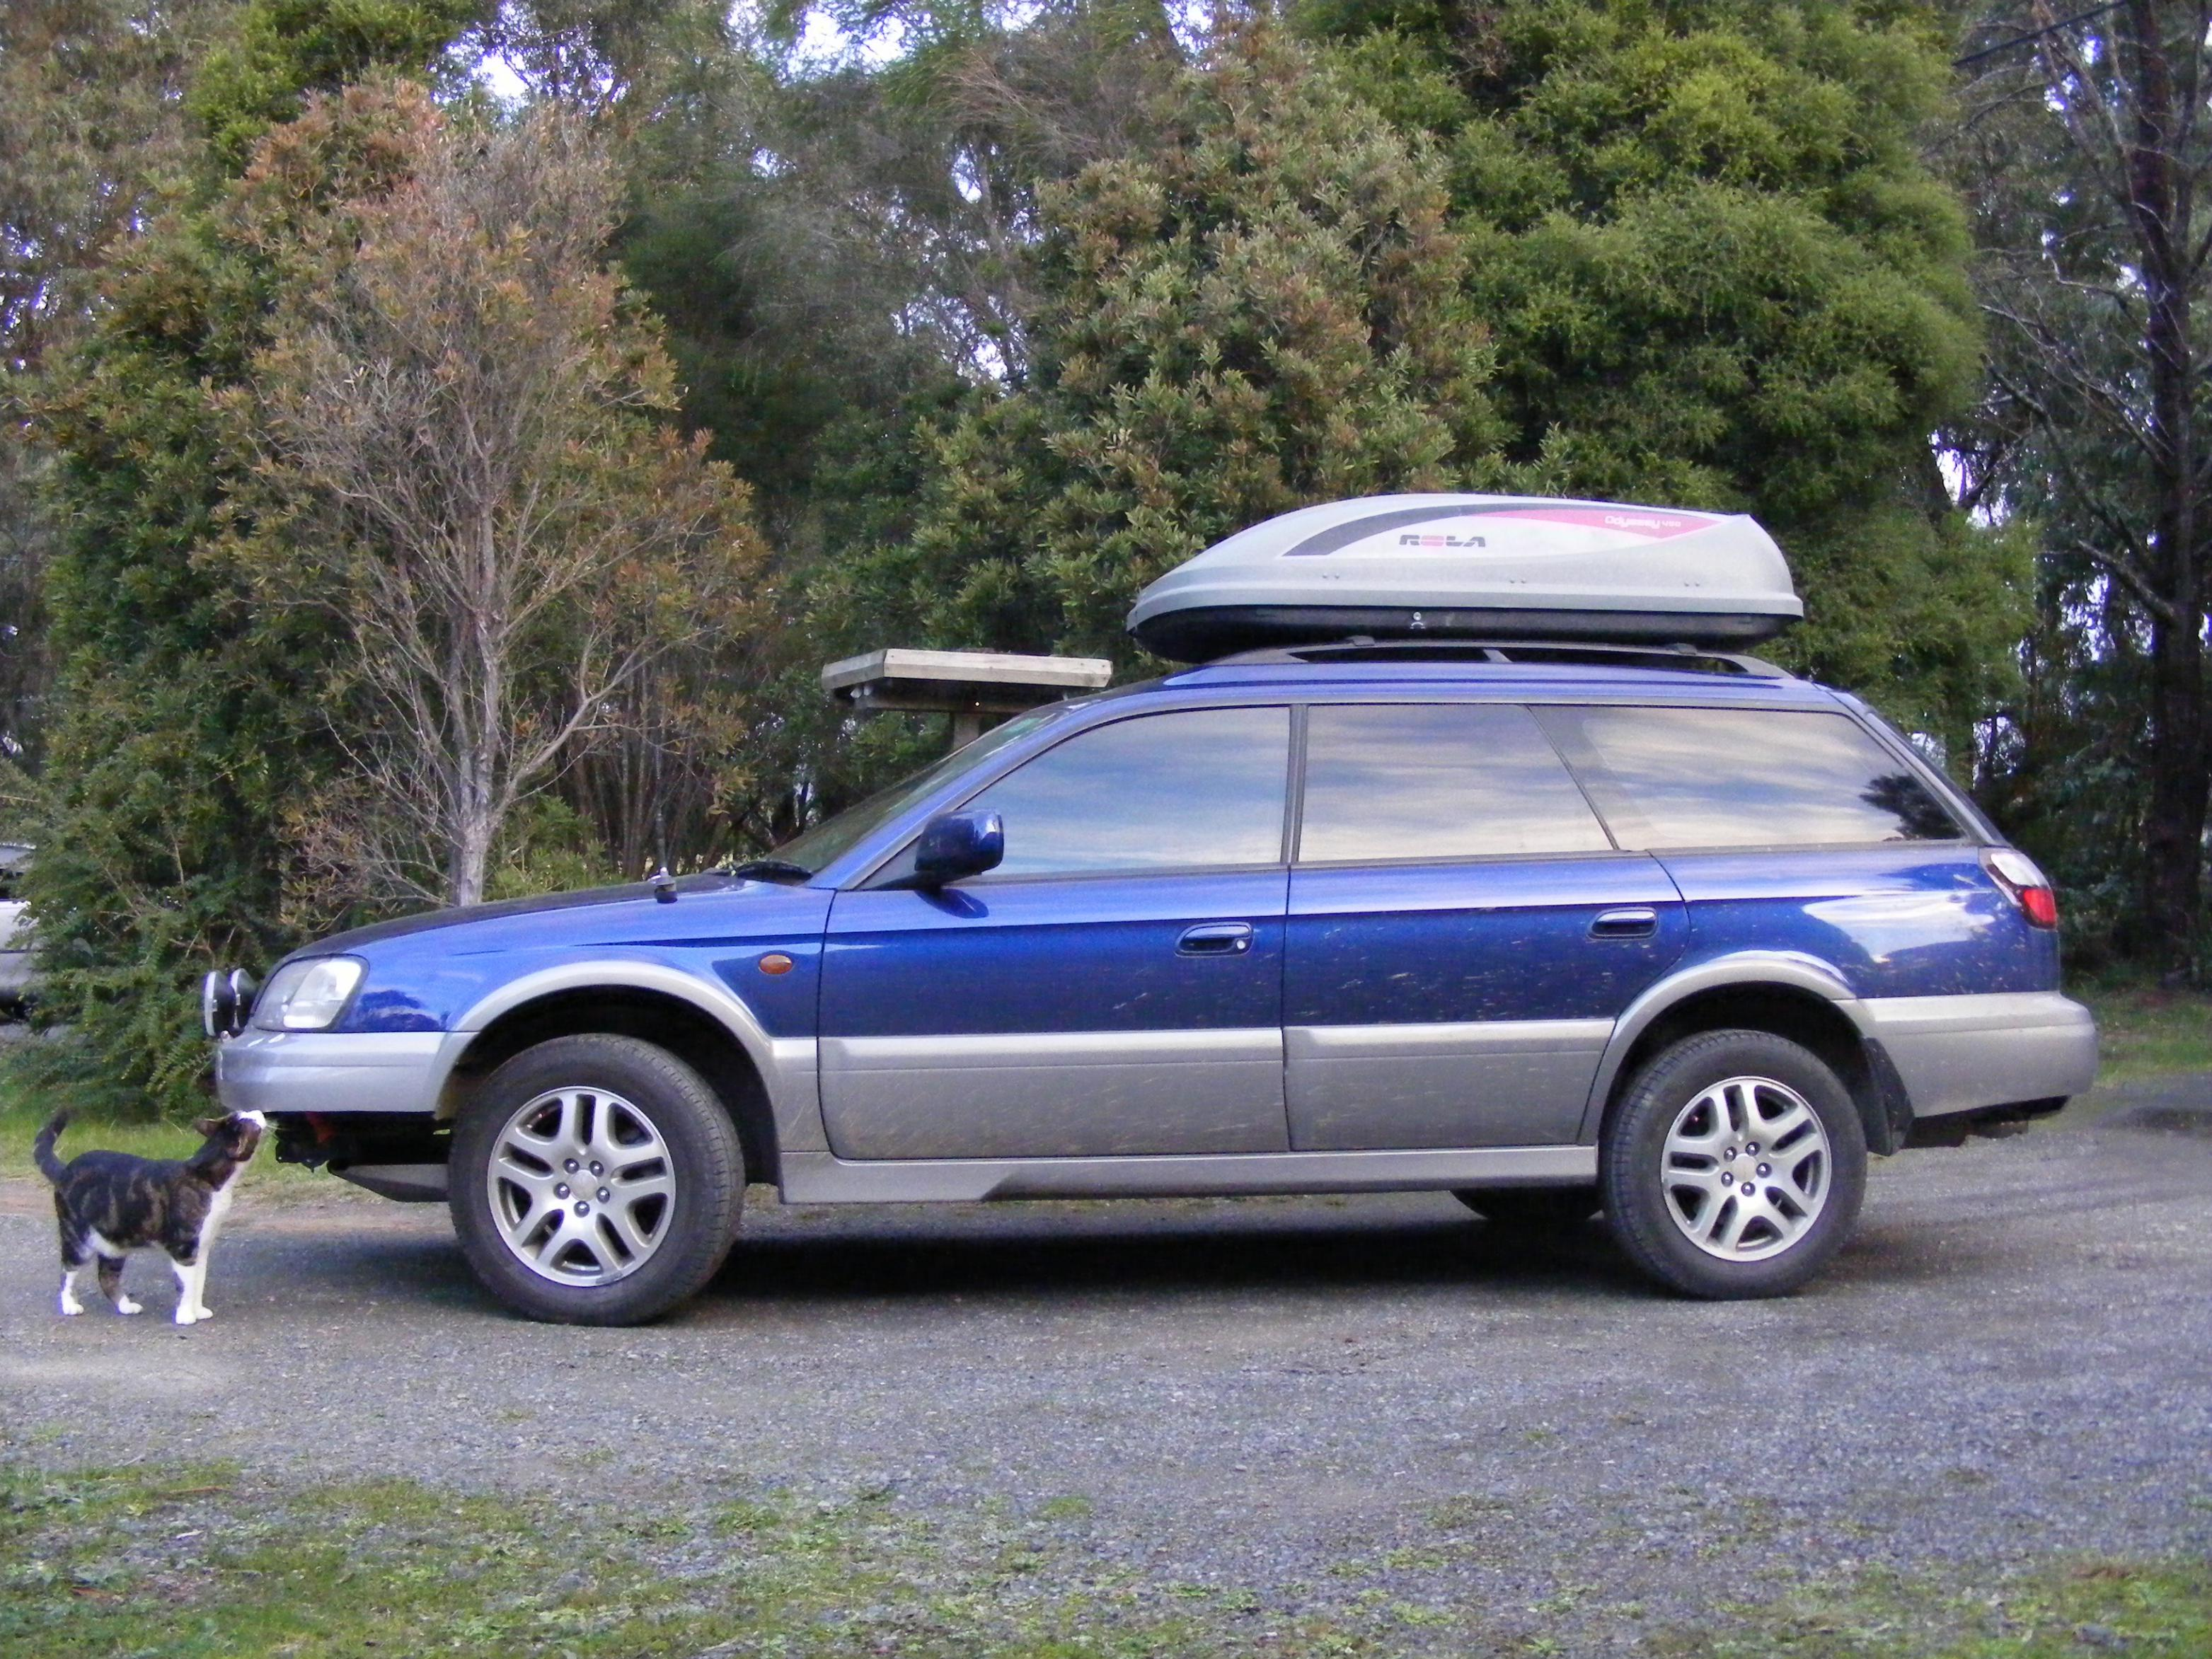 Subaru Outback Lift Kit >> Supercars Gallery Subaru Outback Lifted